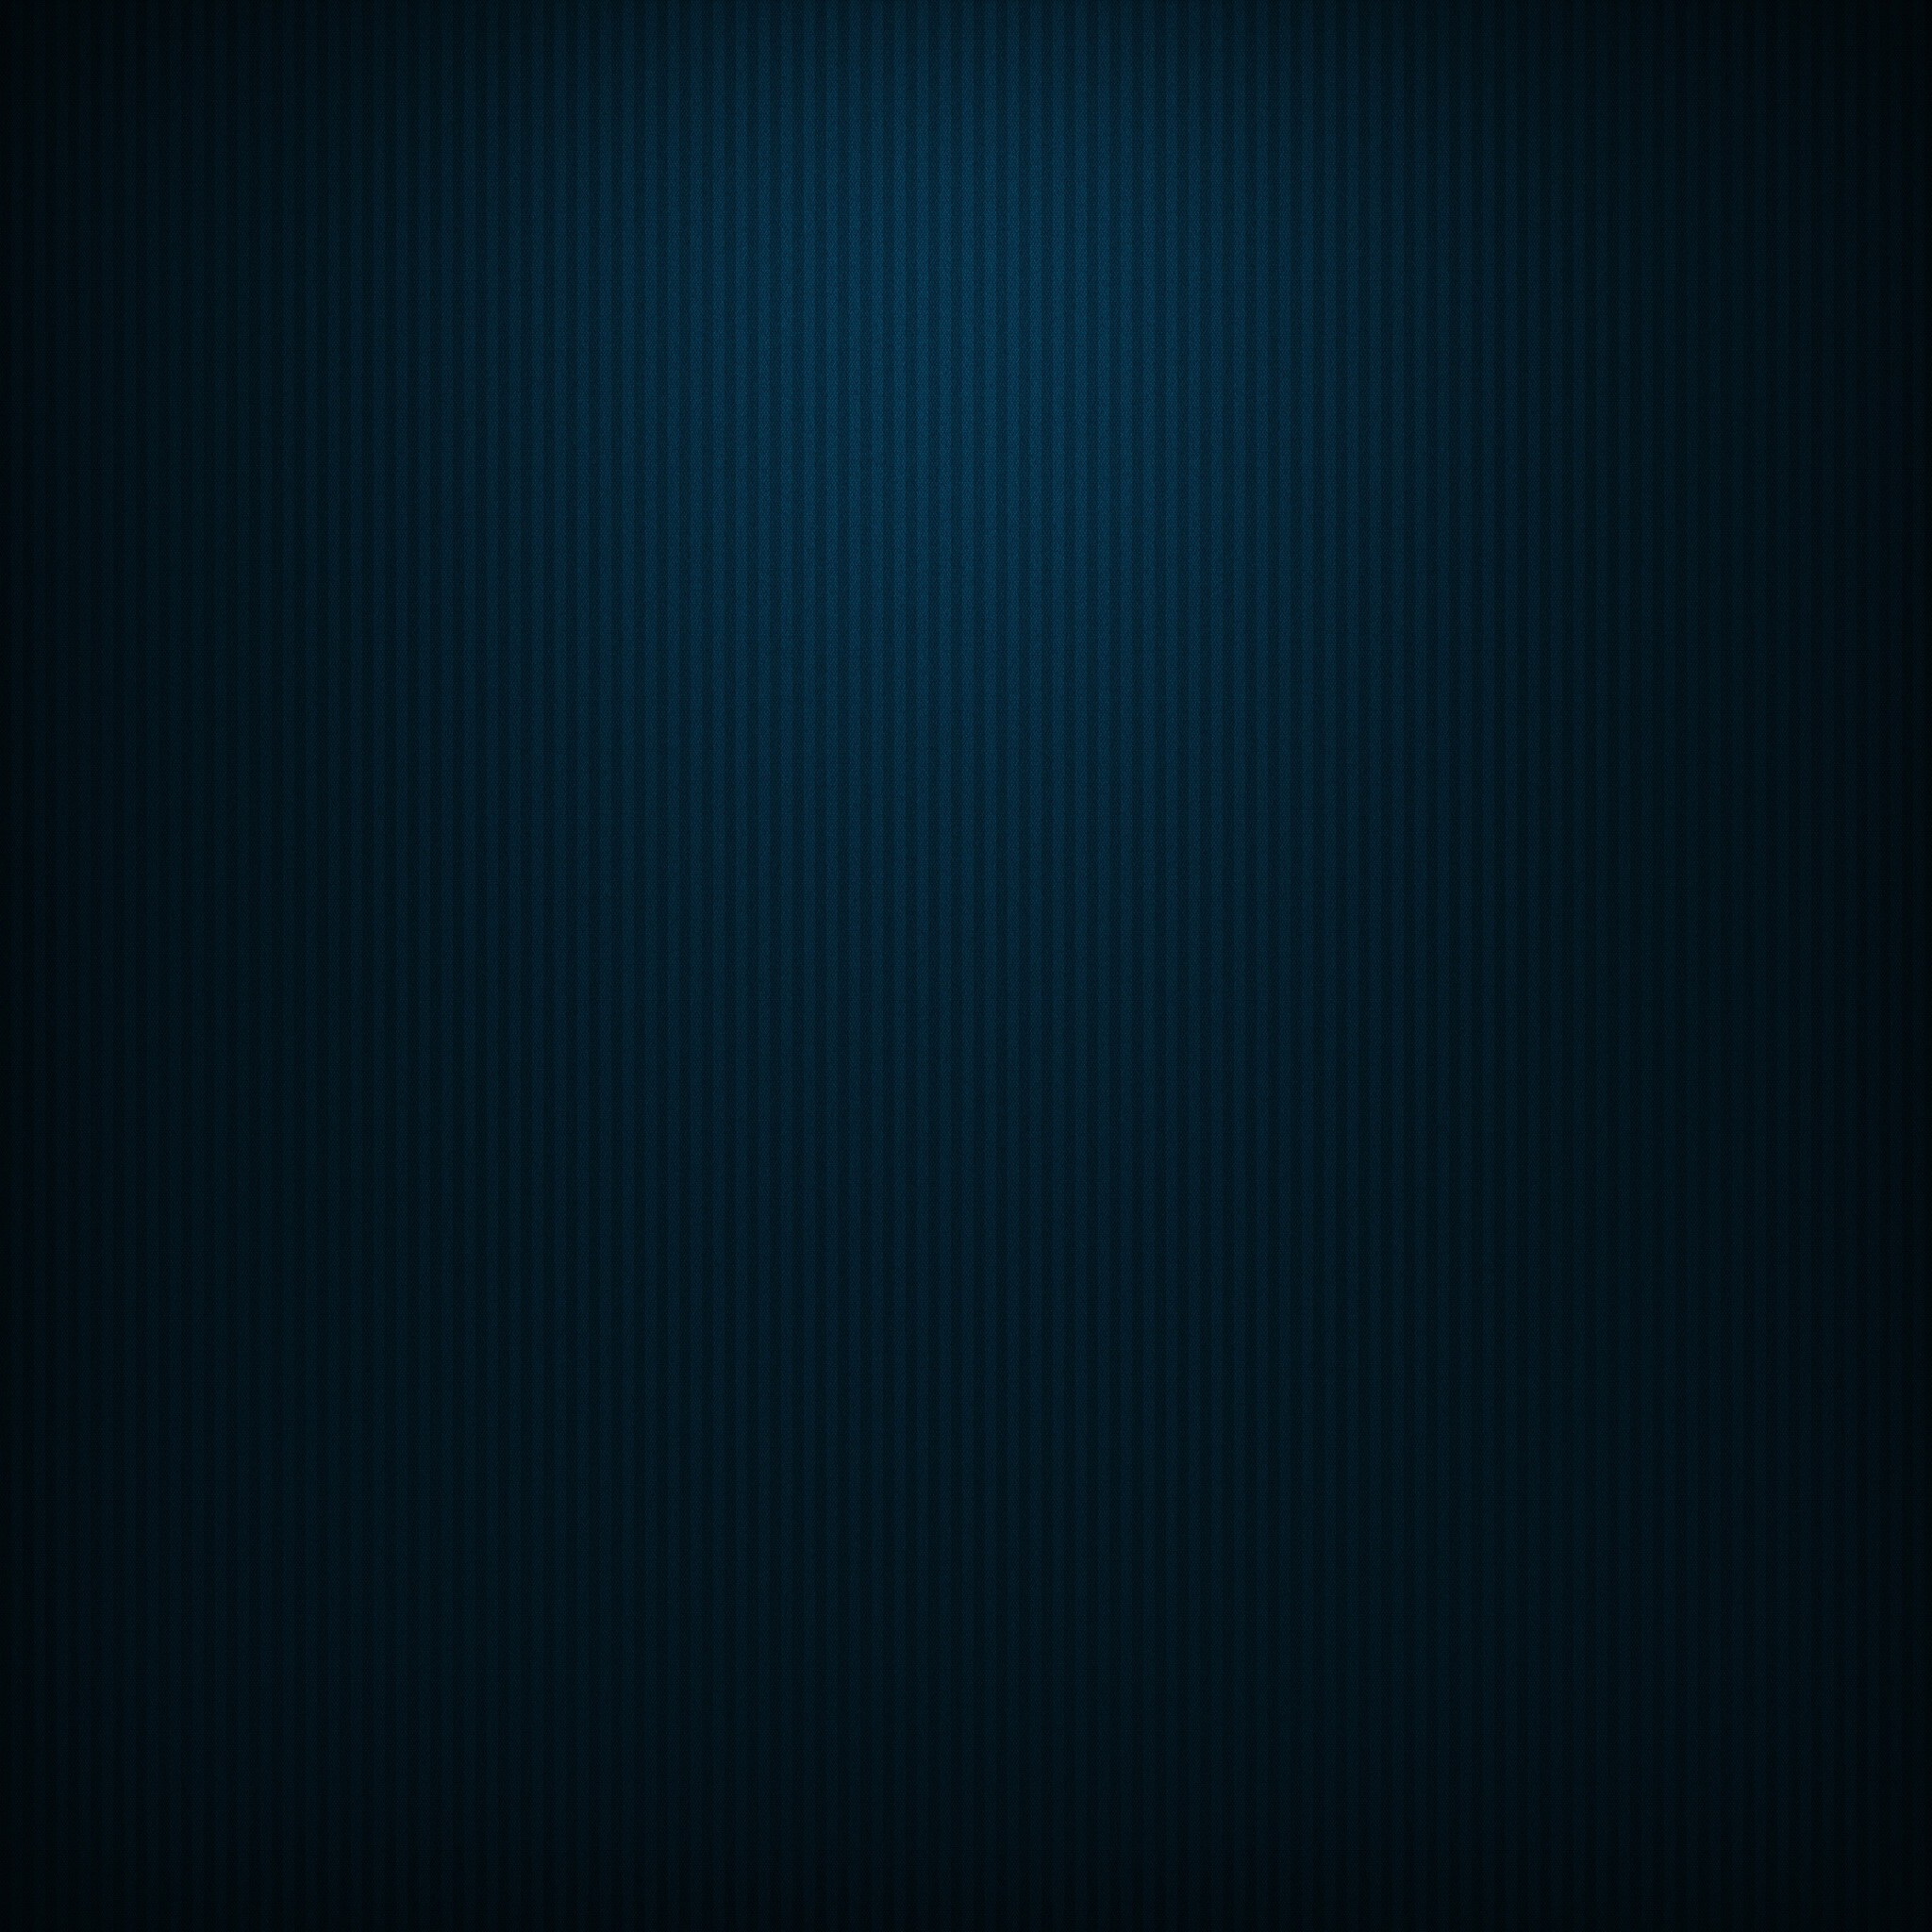 Dark-Blue-3Wallpapers-iPad-Retina